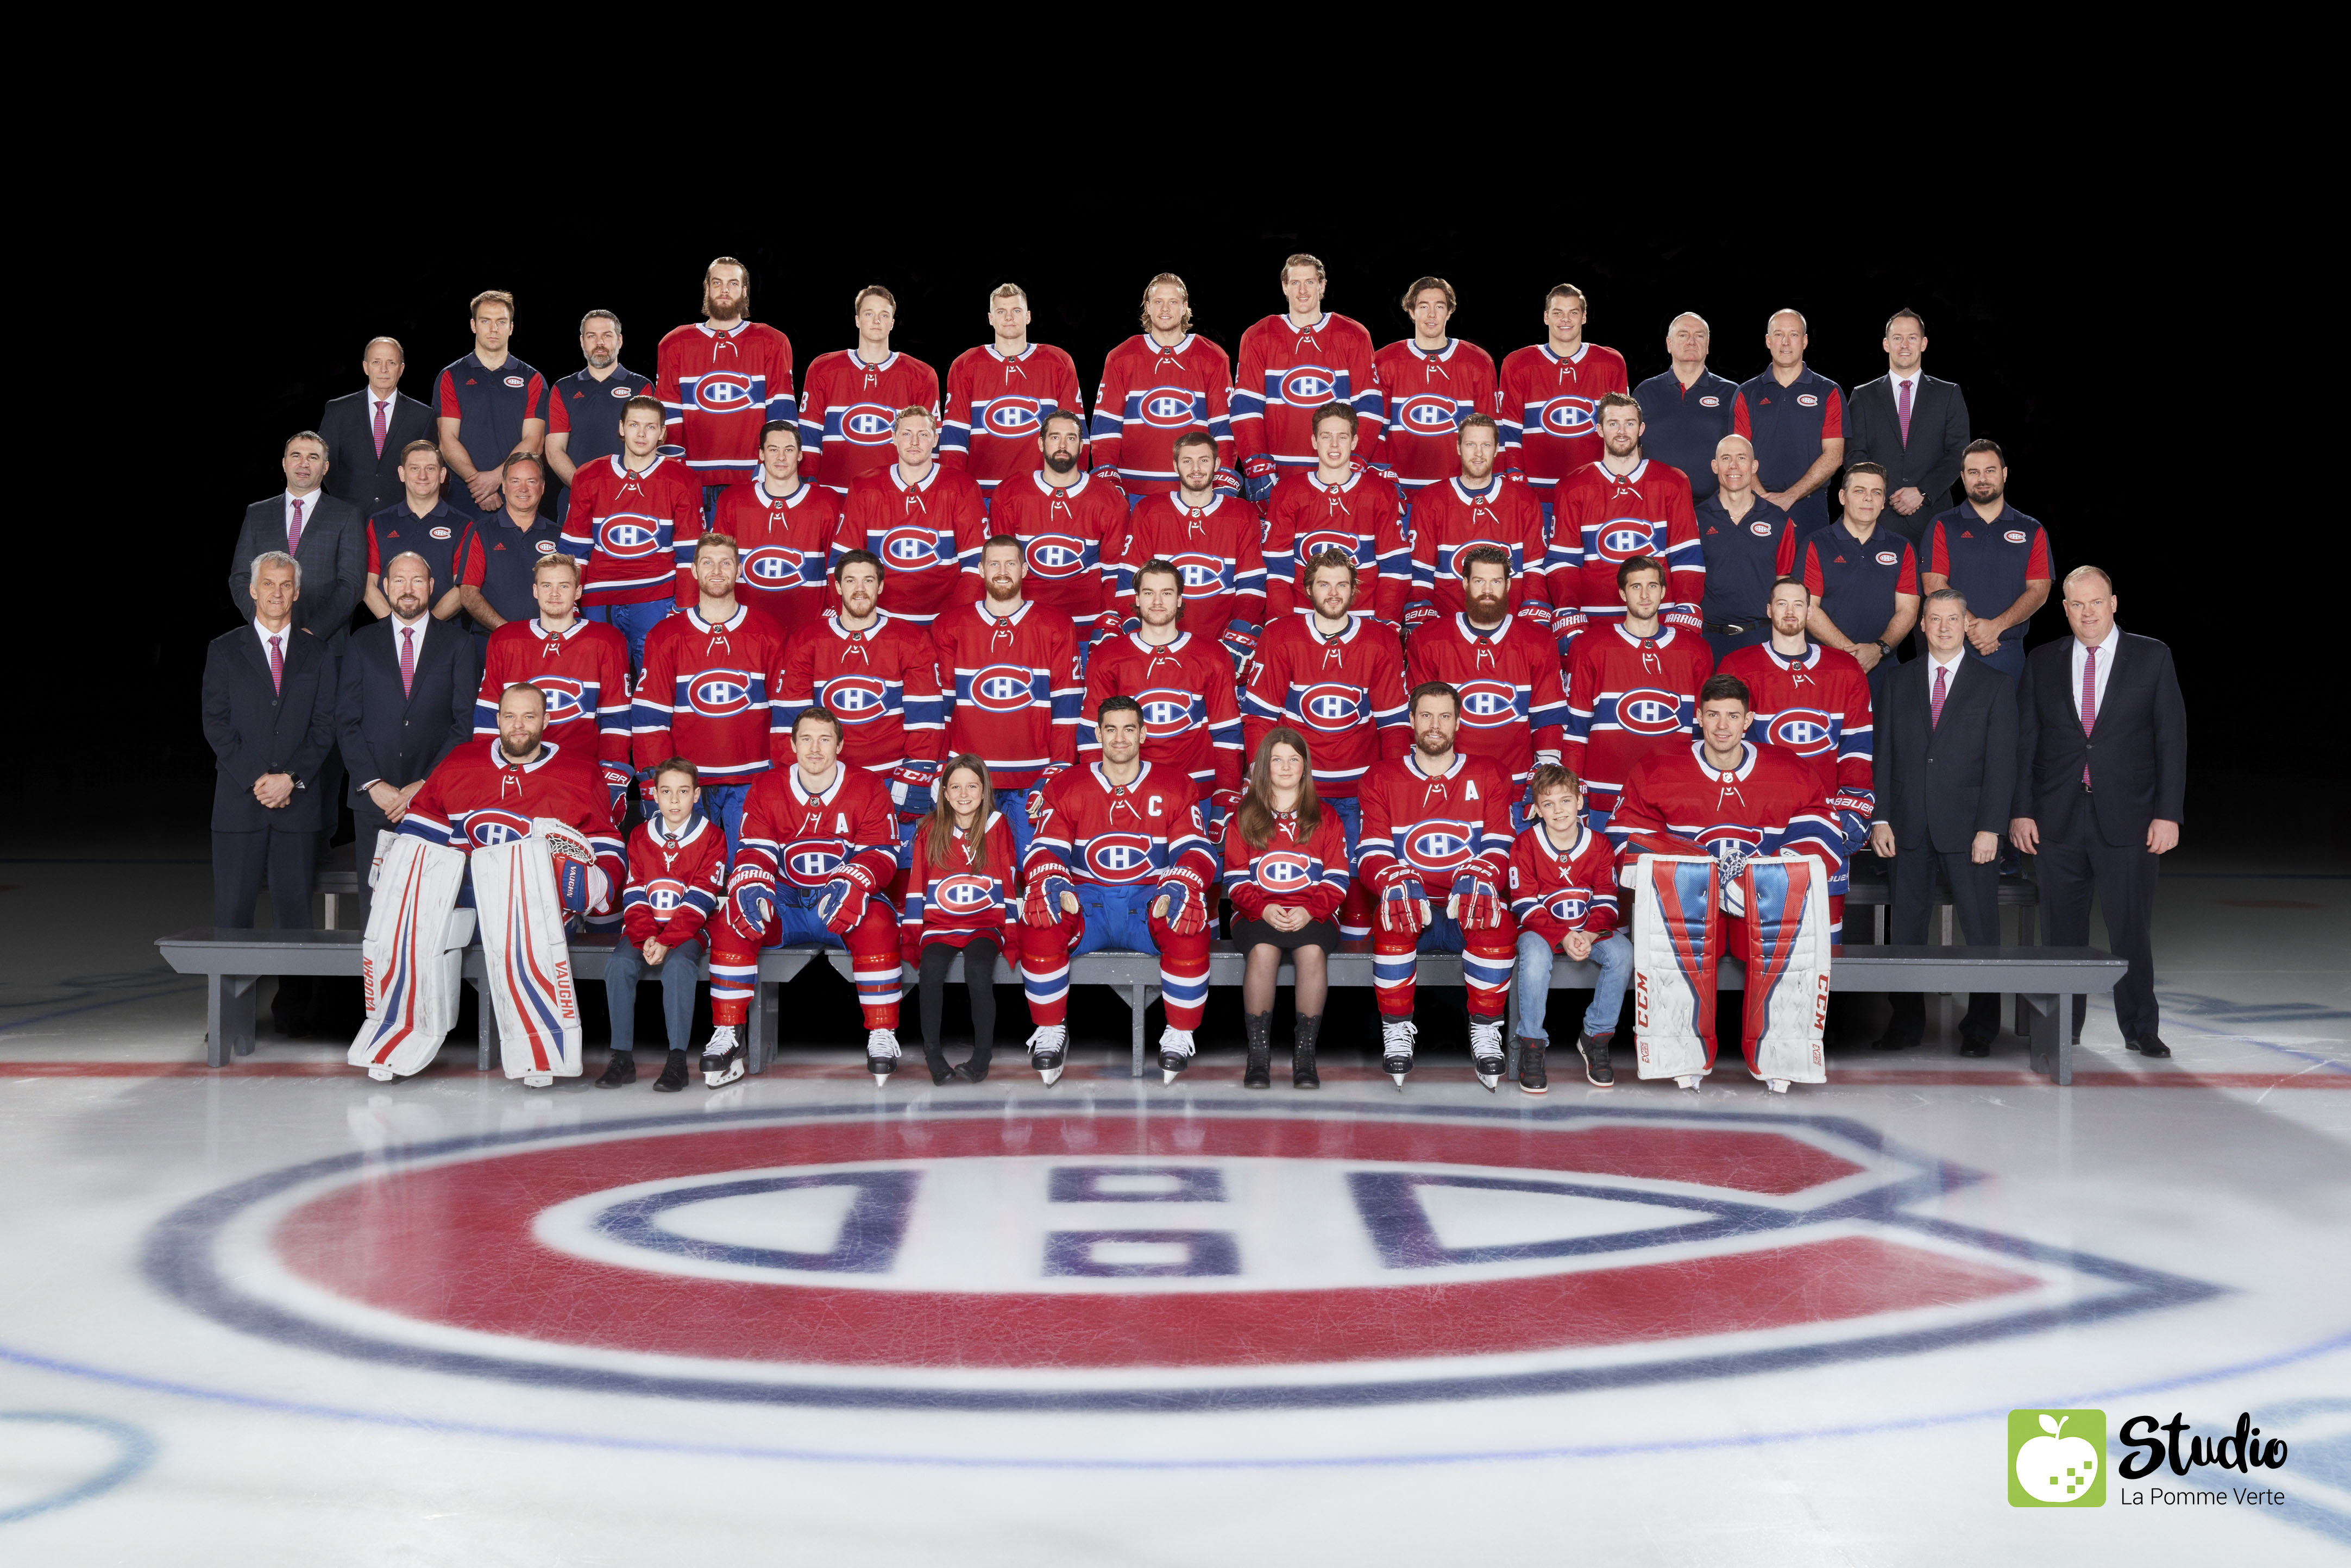 Montreal Canadiens hockey team official photo